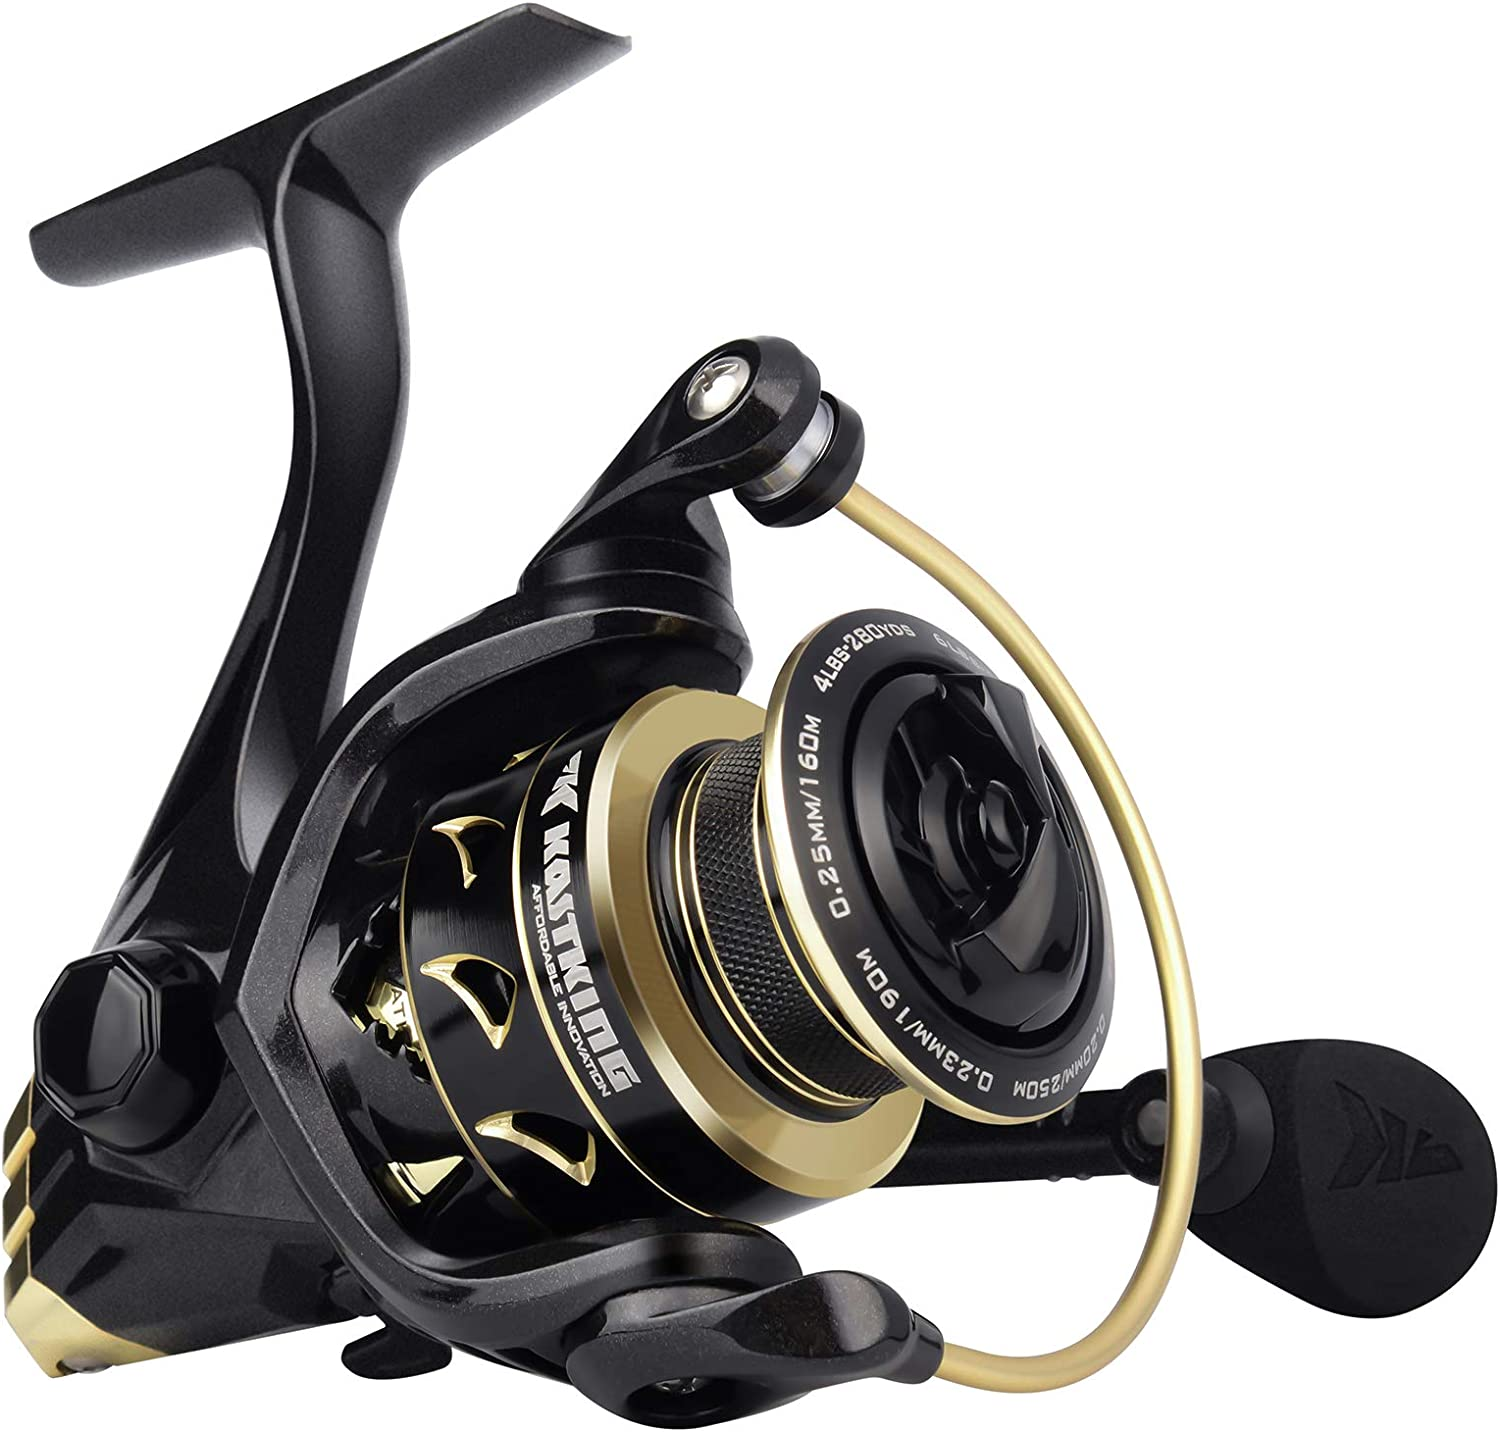 Best Spinning Reel: KastKing Valiant Eagle Spinning Reel